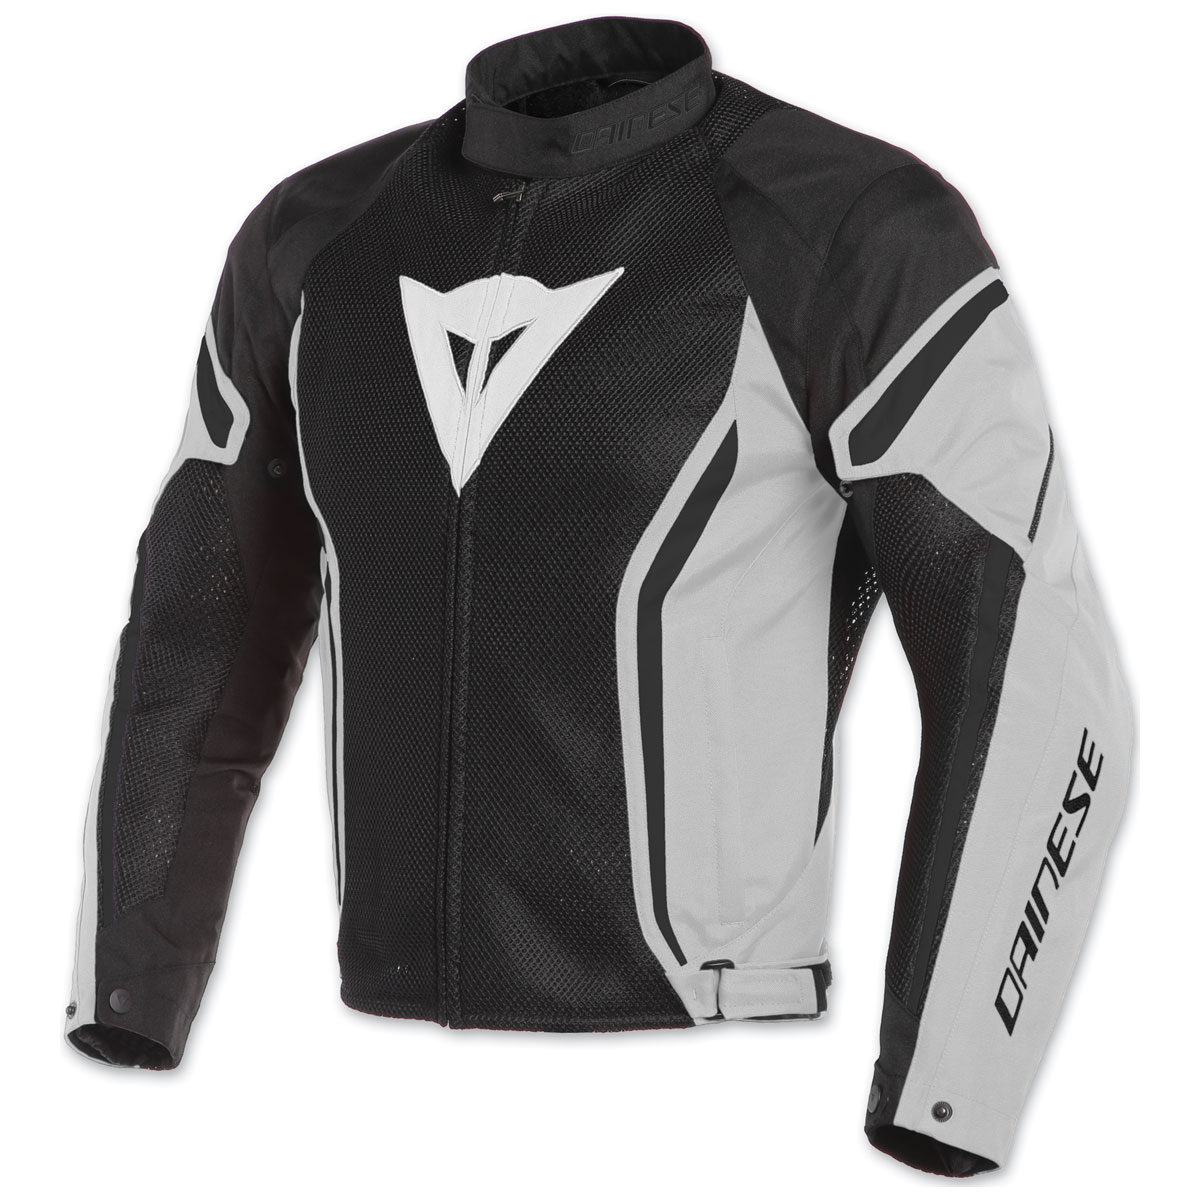 Dainese Men's Air Crono 2 Black/Glacier Gray/Black Textile Jacket